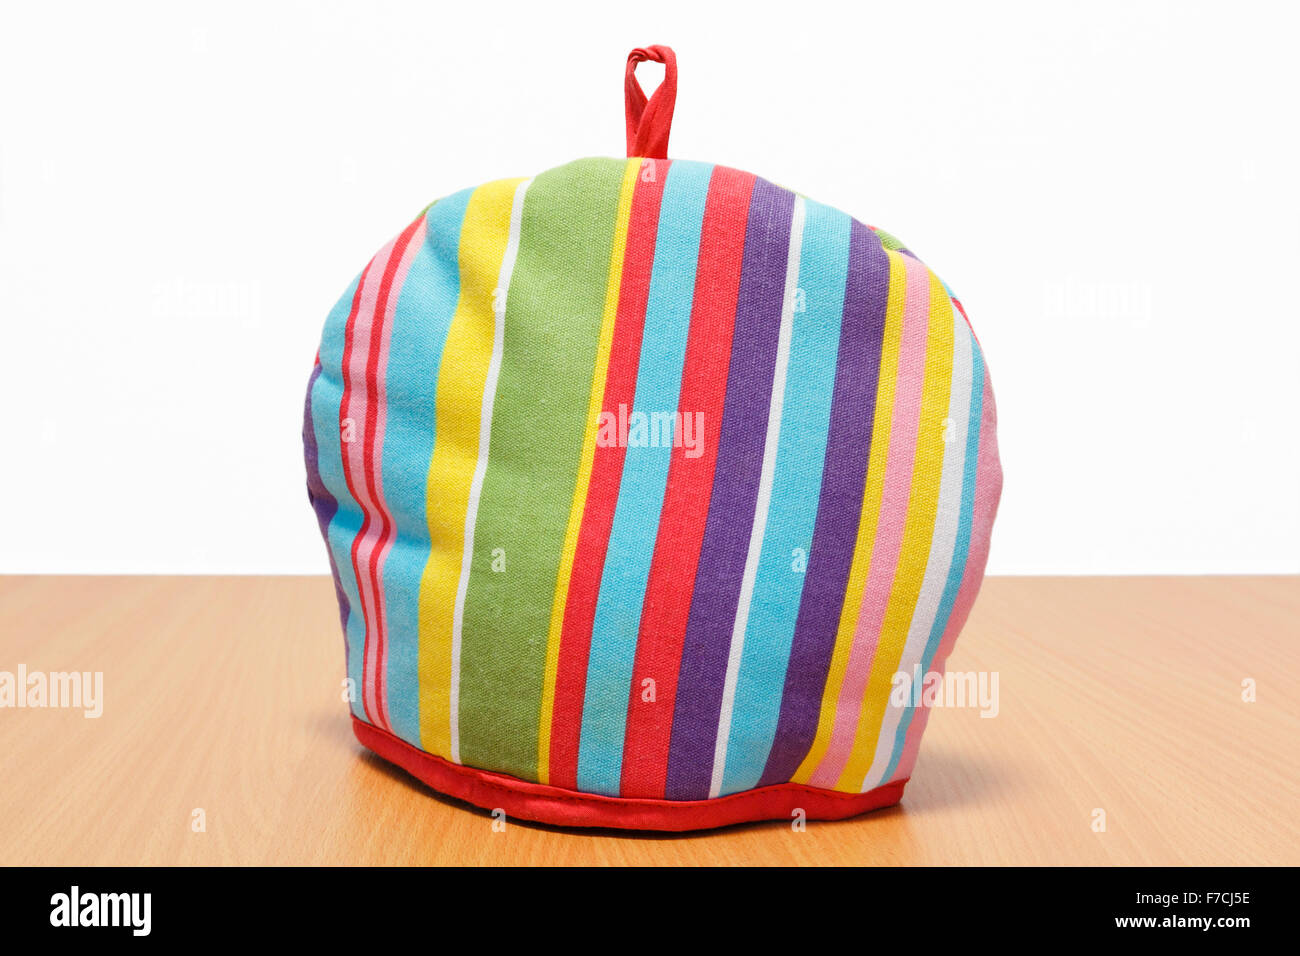 Colourful striped teacosy covering a teapot to keep it warm on a wooden table. England UK Britain - Stock Image